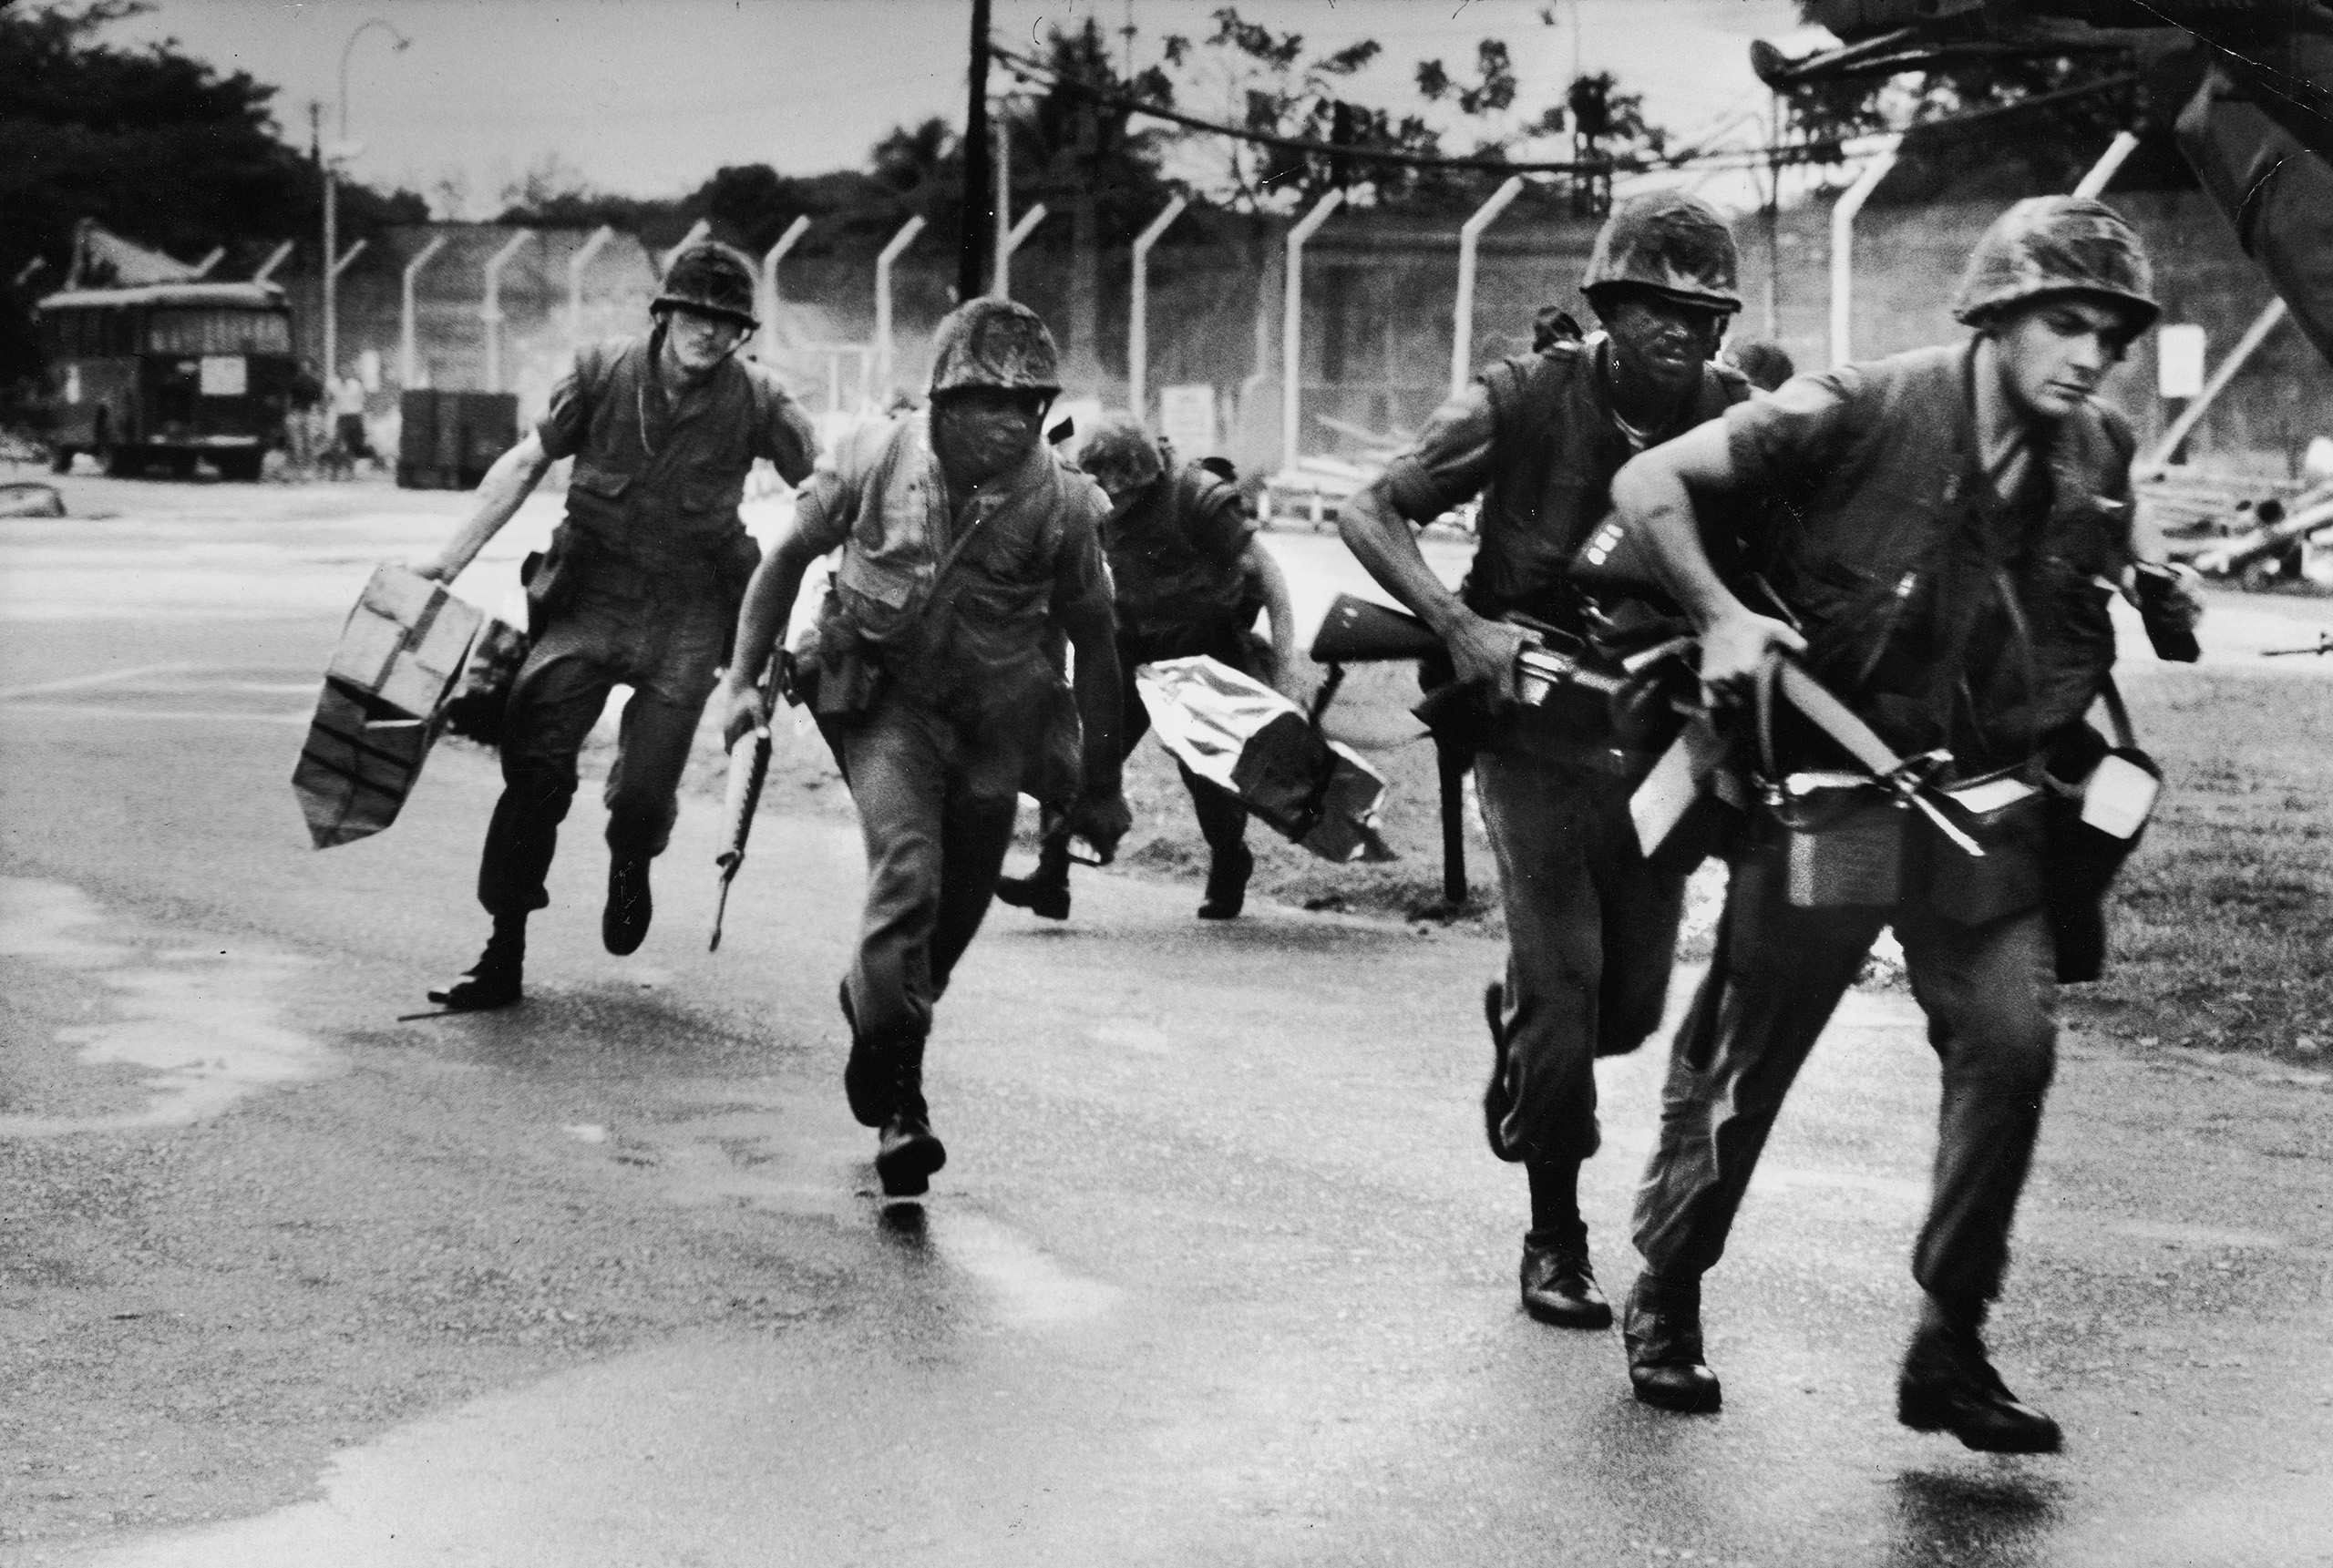 Helicopter-transported U.S. Marines running, arriving at Tan Son Nhut air base to secure area around Defense Attaché Office compound for evacuation of the last Americans in Saigon.